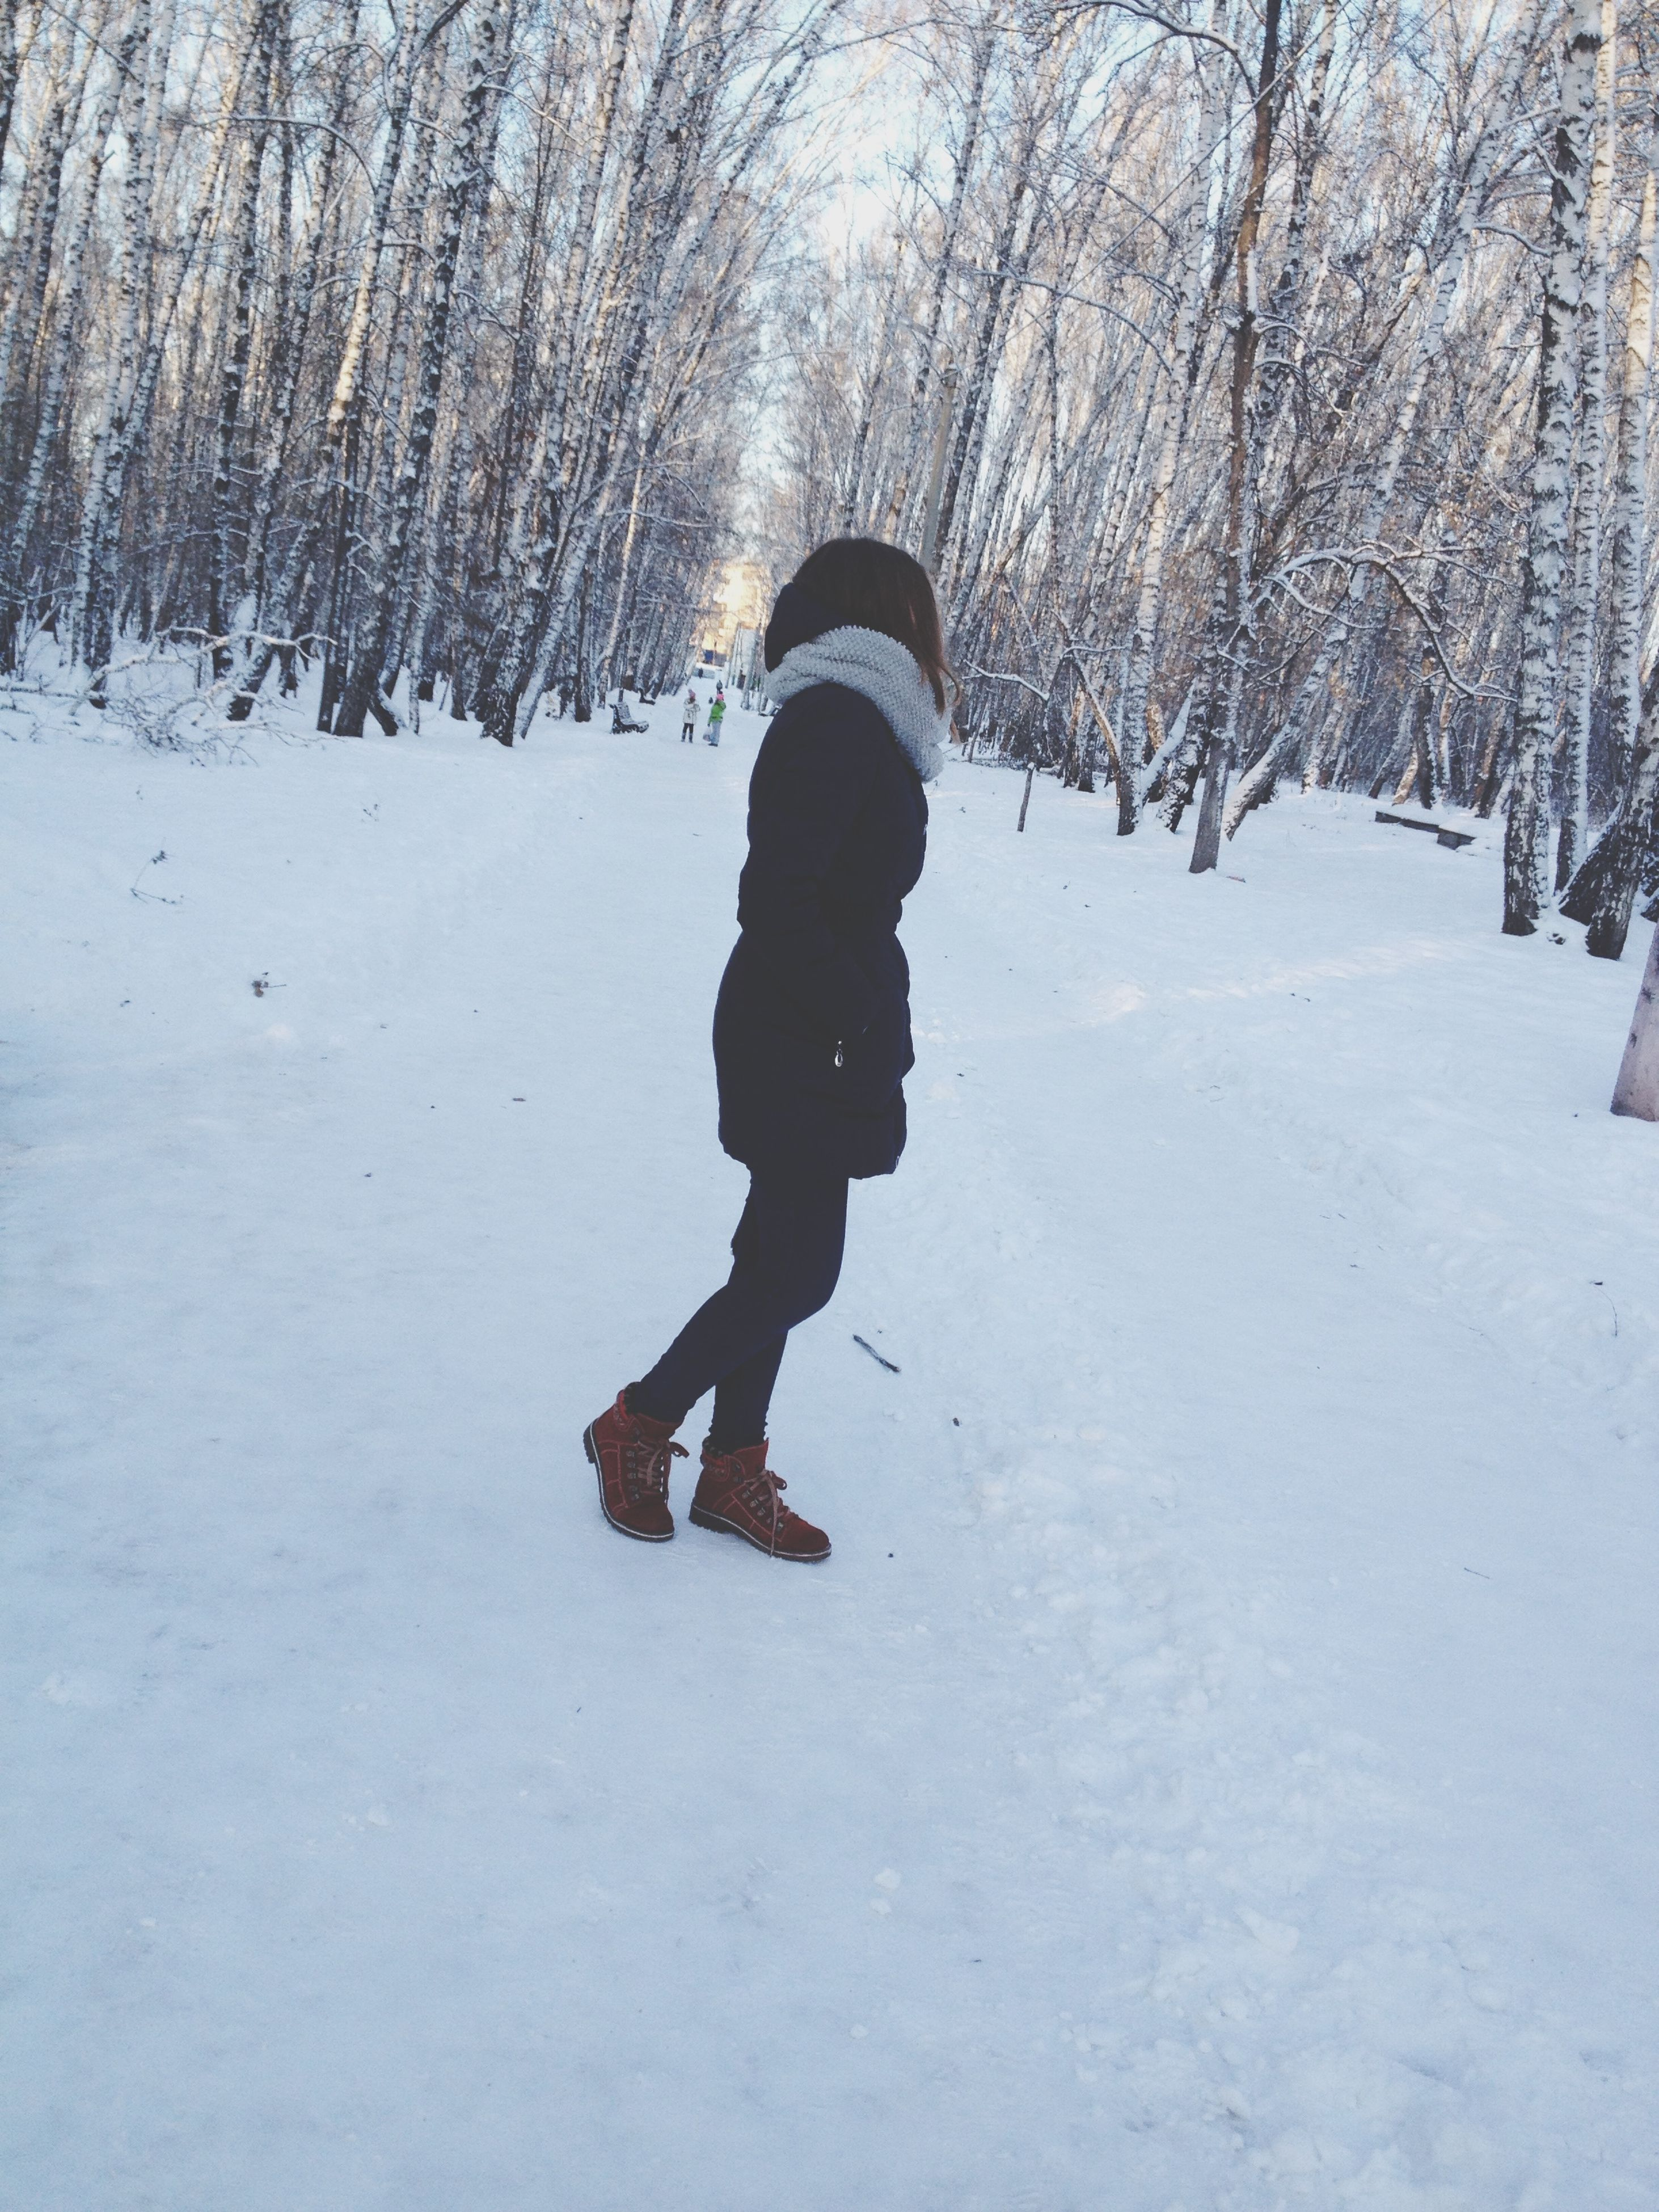 winter, snow, cold temperature, season, tree, weather, full length, lifestyles, warm clothing, leisure activity, covering, forest, nature, walking, rear view, tranquility, white color, covered